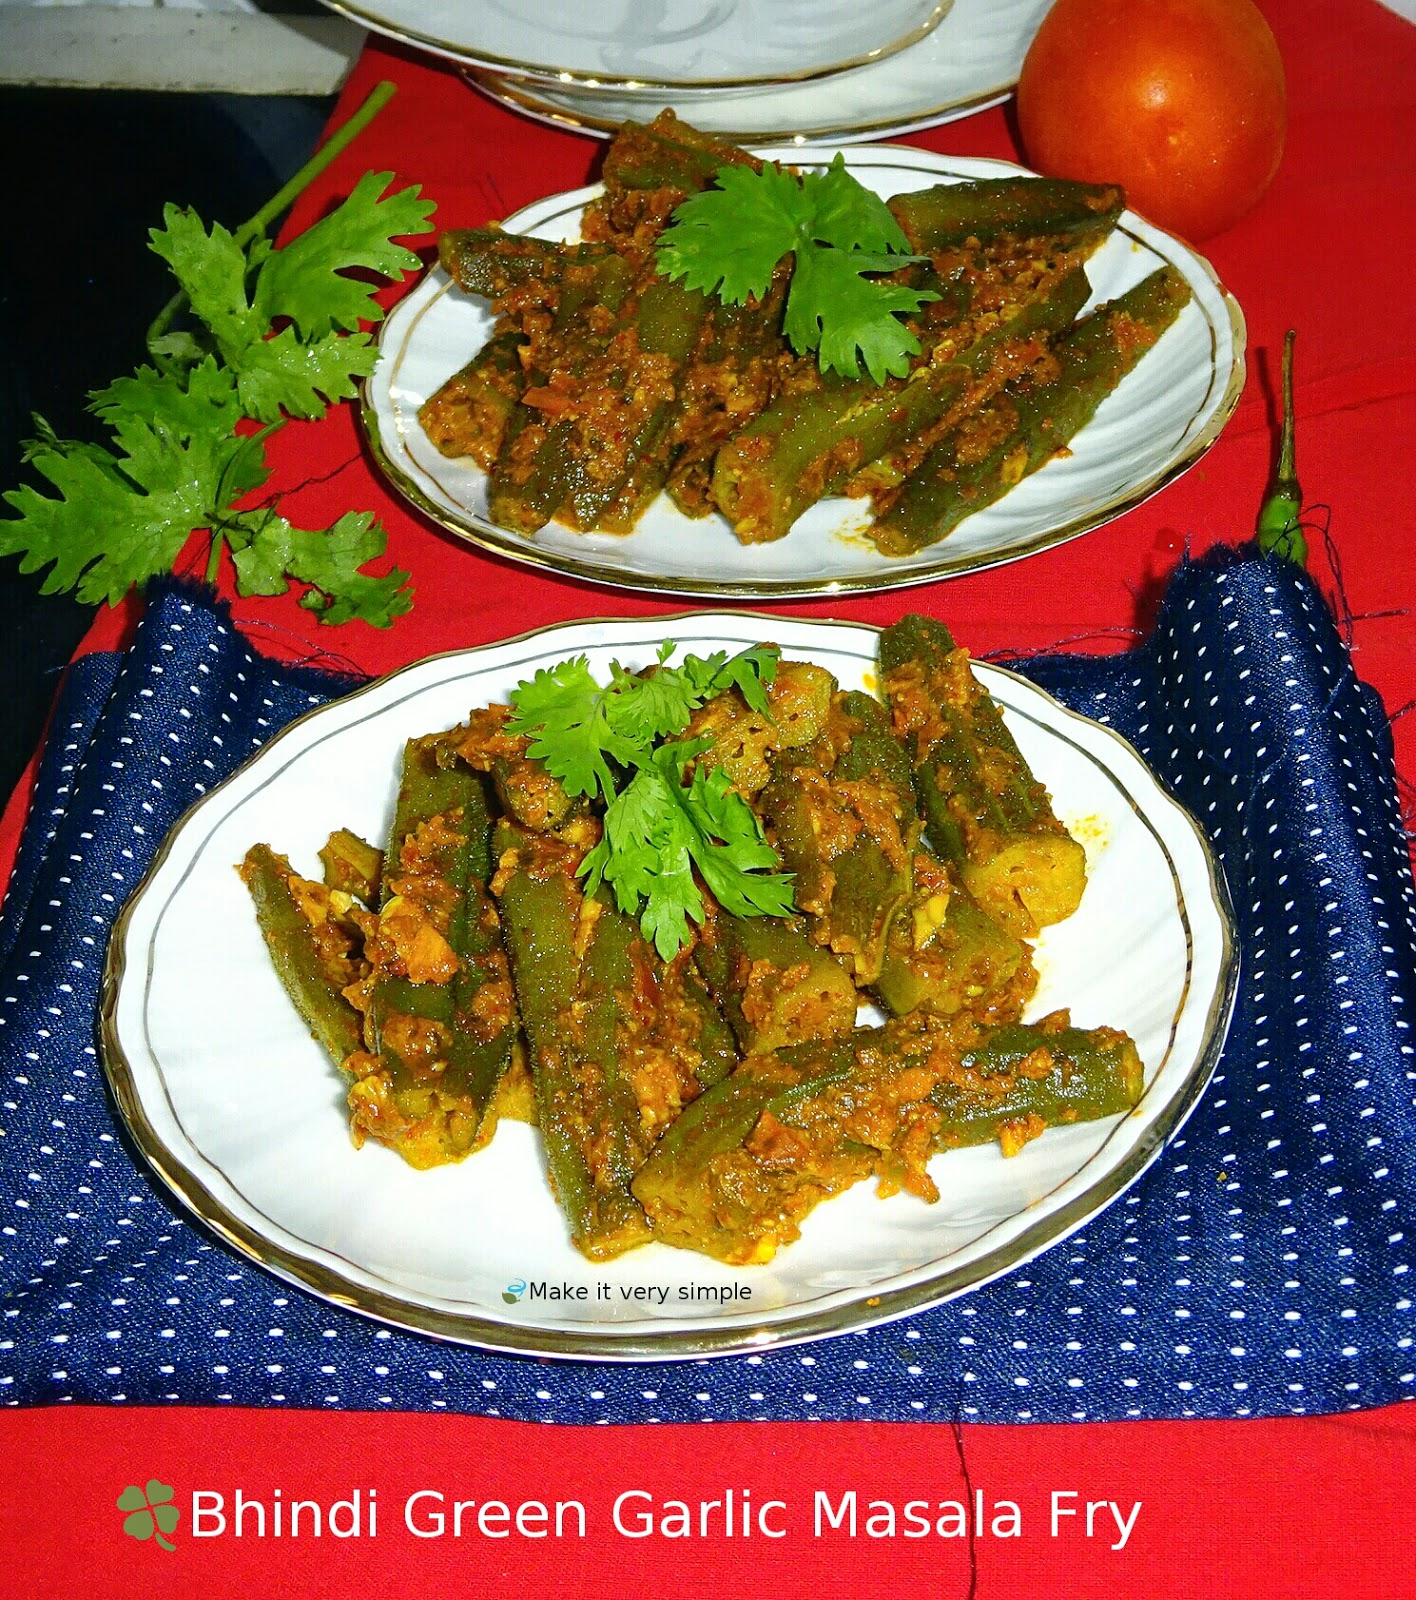 Bhindi Green Garlic Masala Fry..